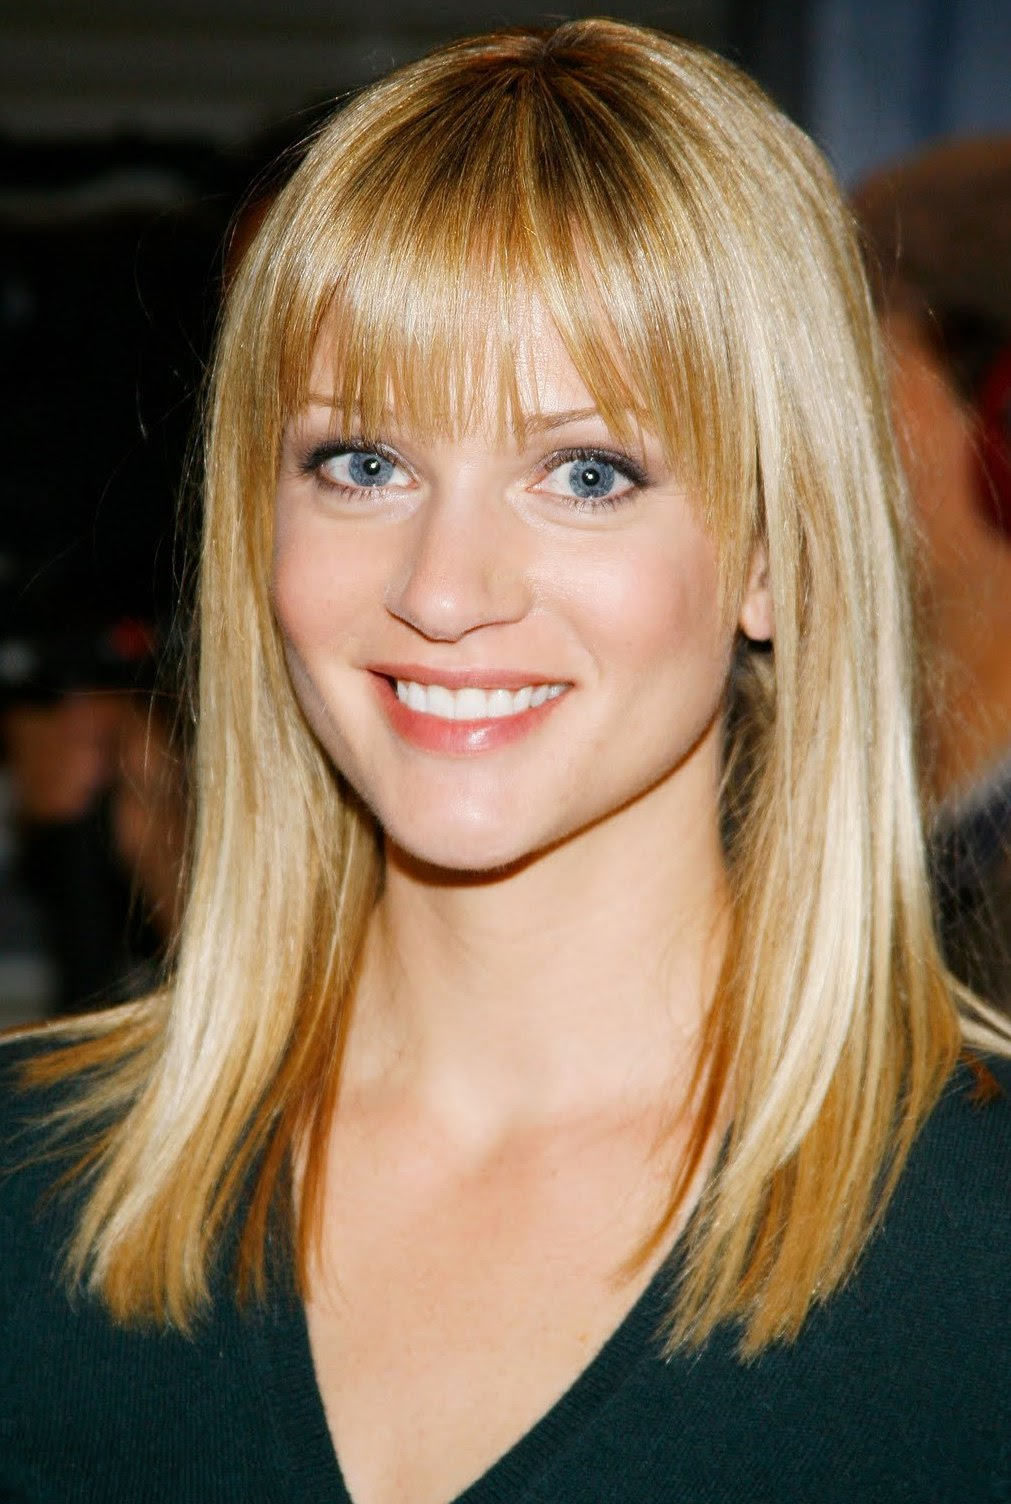 Andrea J Cook celebrity biography and photos: a. j. cook